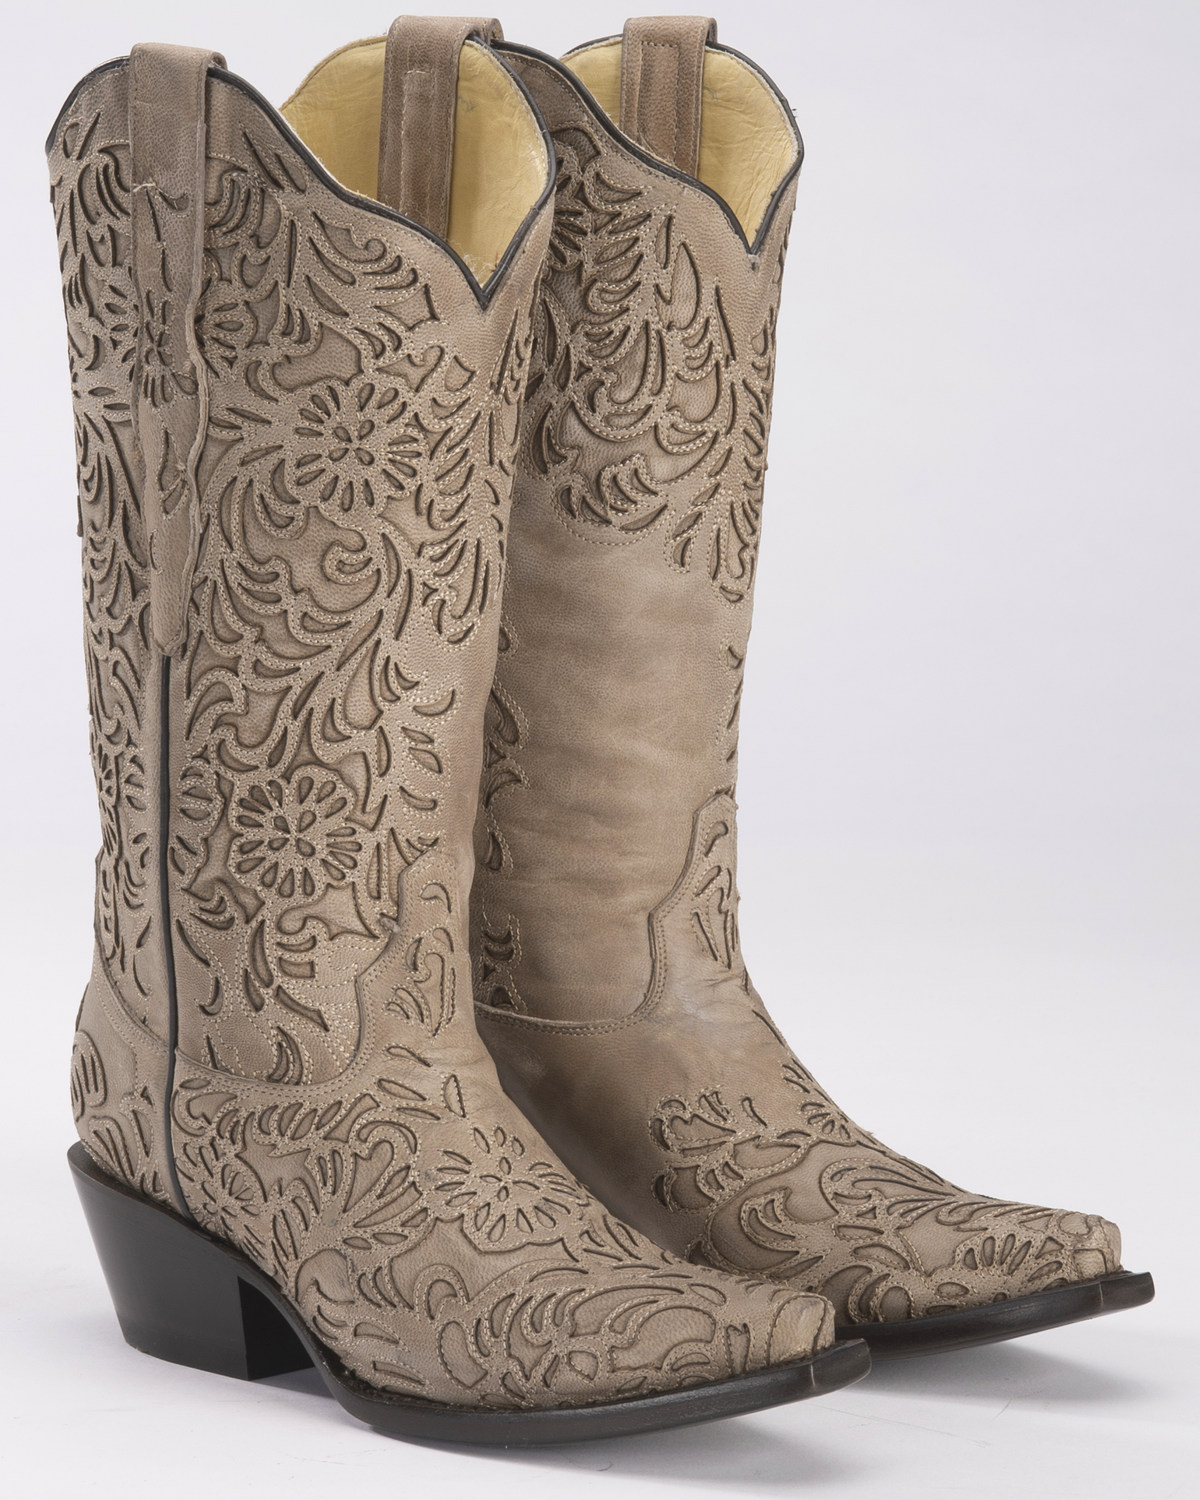 shopping classic shoes really cheap Corral Women's Bone Cutout Cowgirl Boots - Snip Toe | Boot Barn